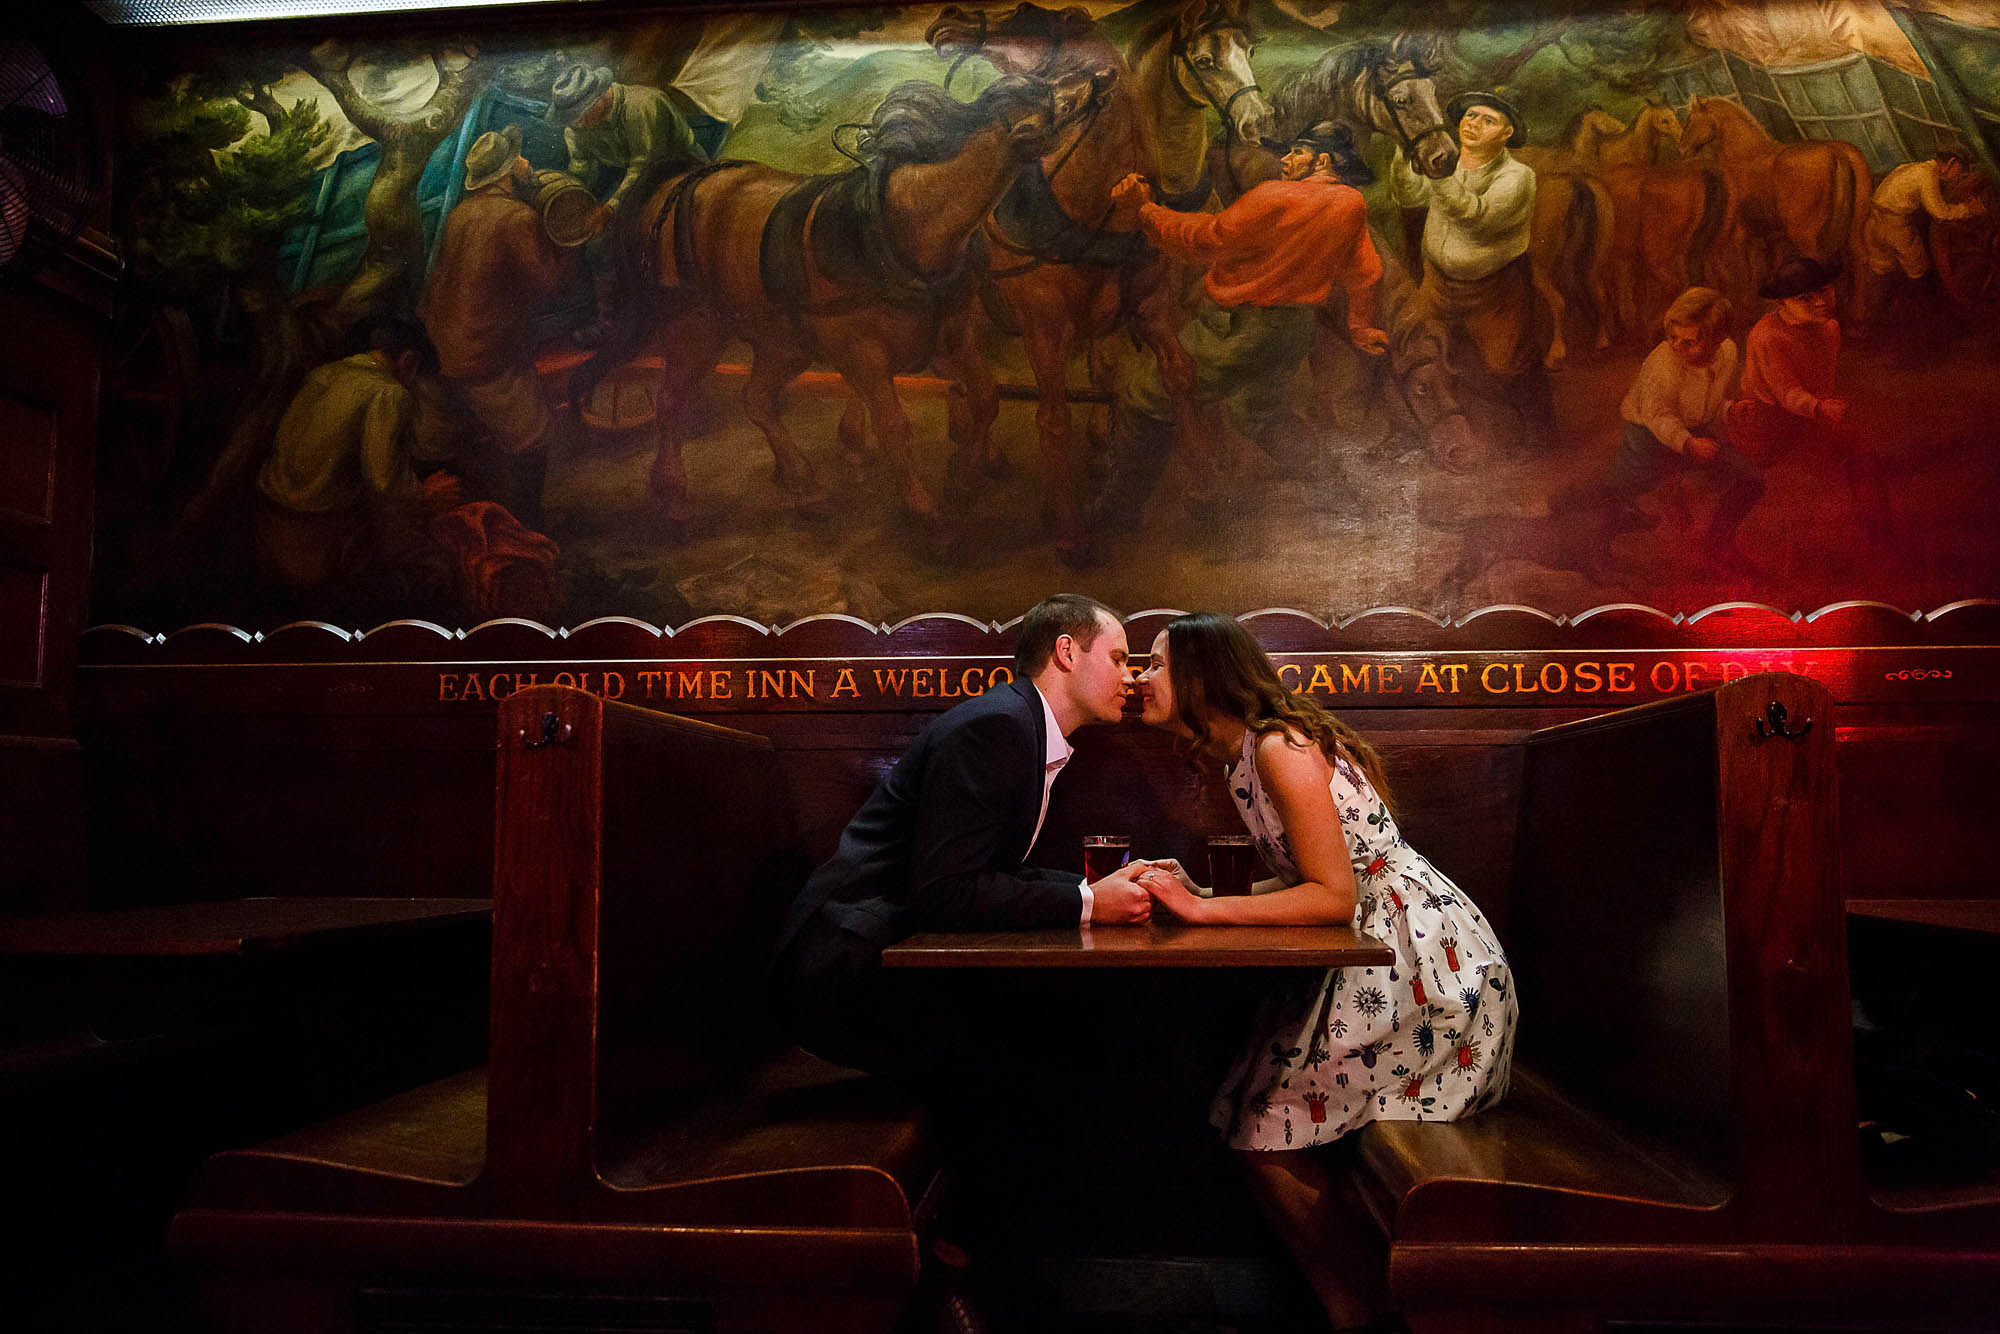 An engaged couple in a dress and suit coat with a tie are sitting in a dark booth holding hands and leaning in for a kiss with a painted mural of a horse scene on the wall behind them taken in Canton, Ohio.